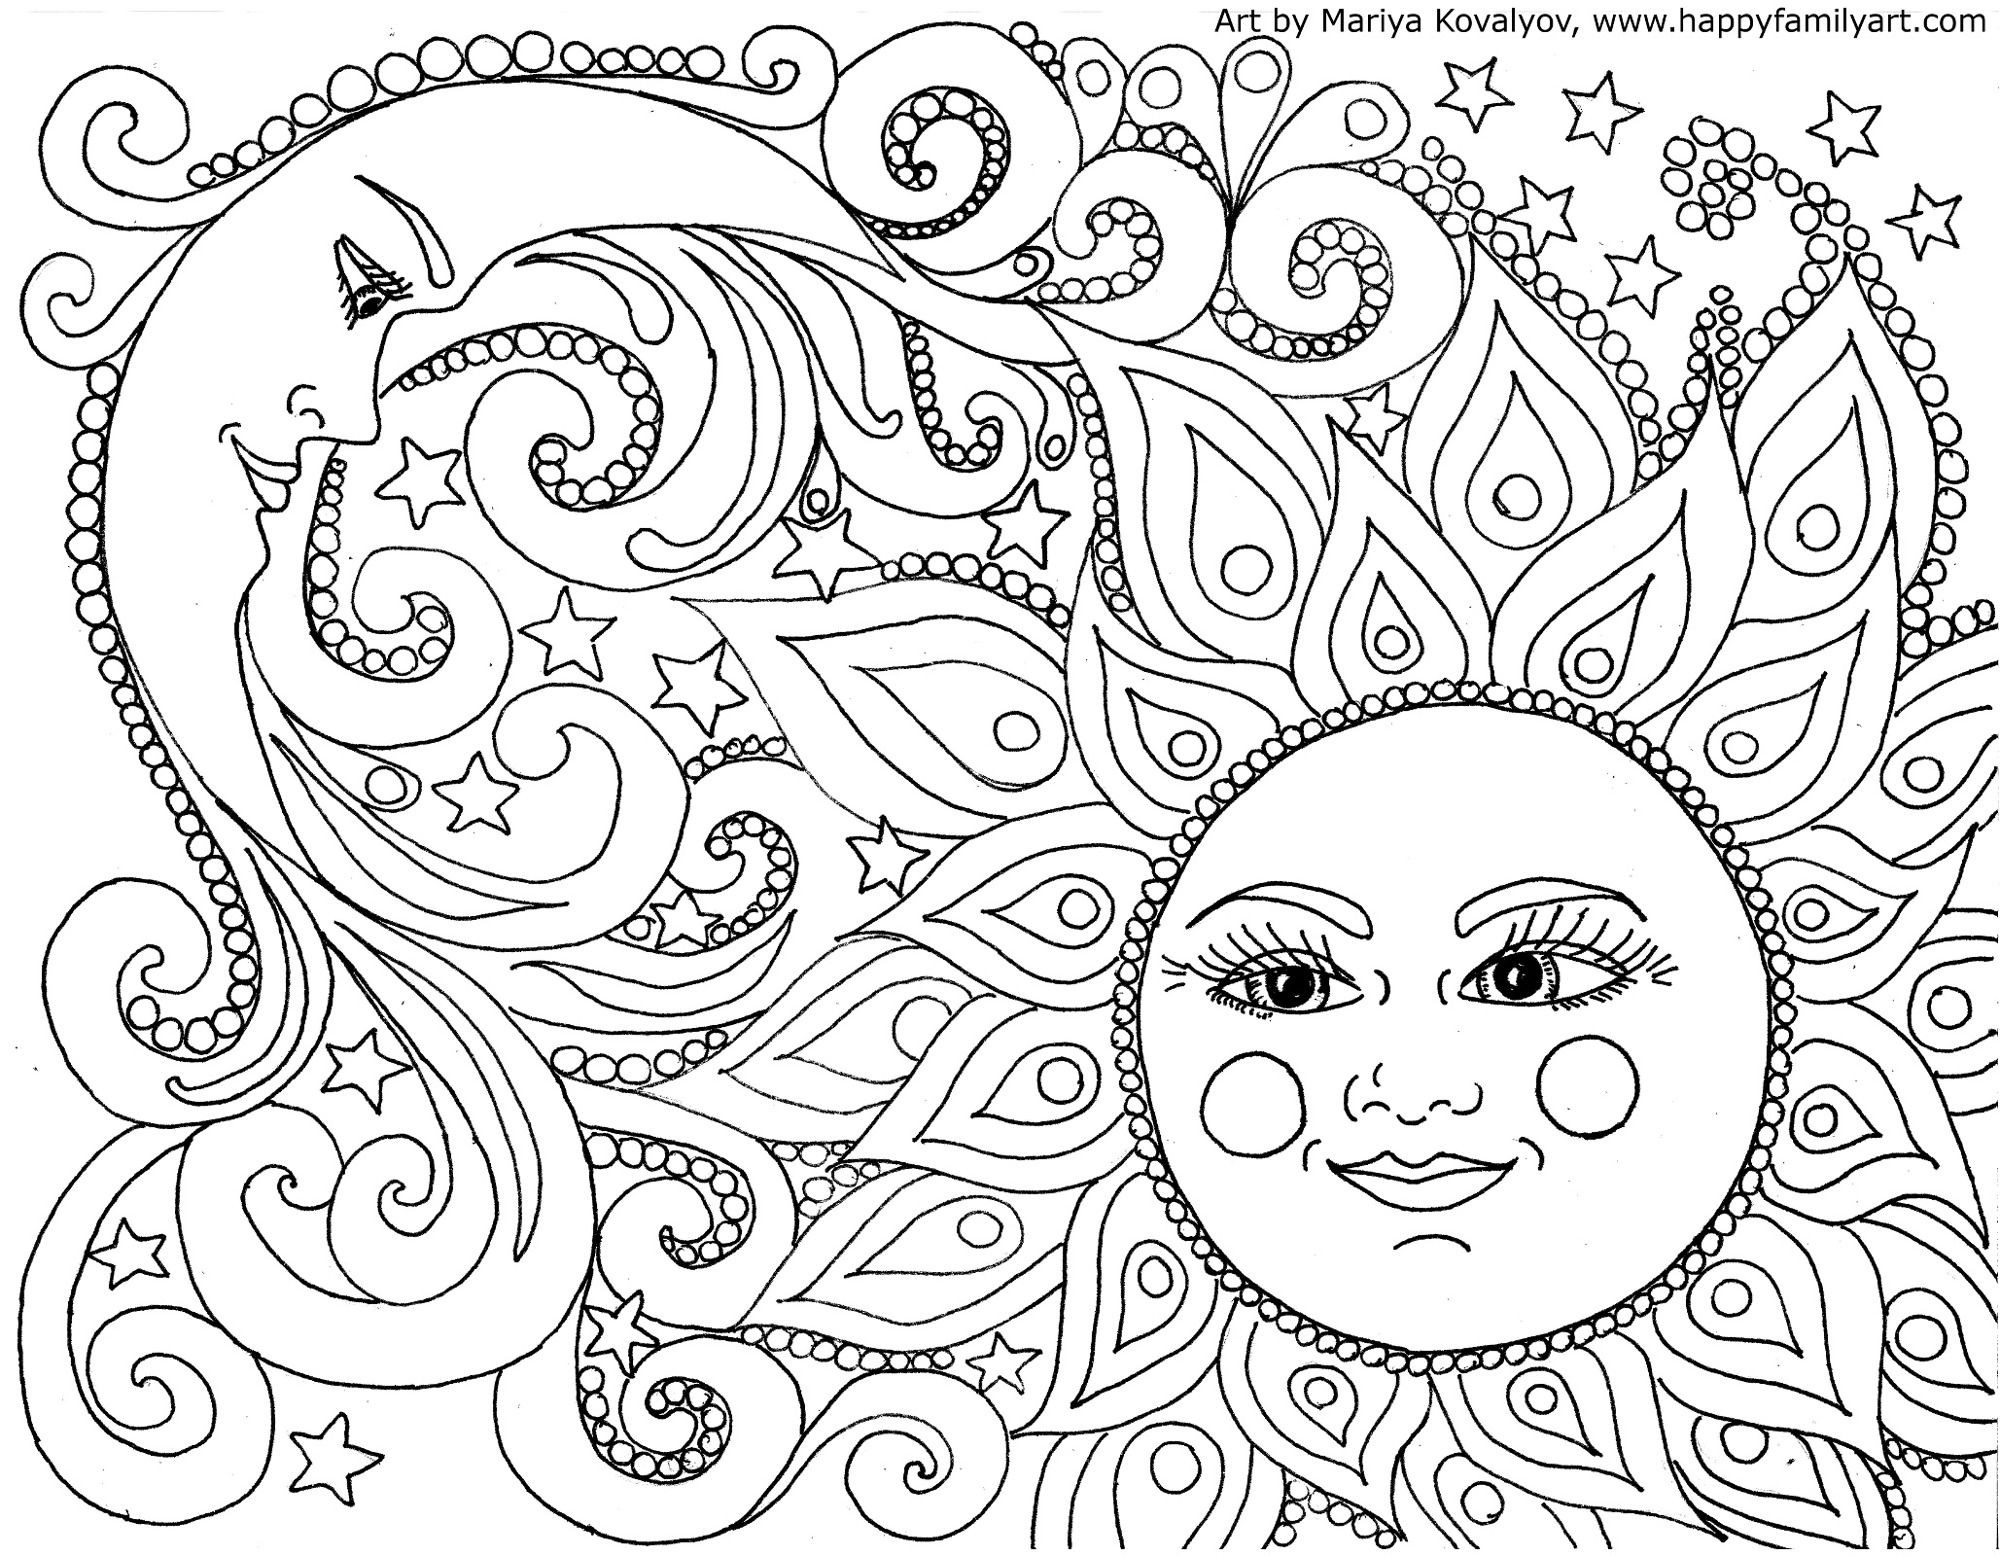 Best ideas about Fun Printable Coloring Pages For Adults . Save or Pin original and fun coloring pages Now.